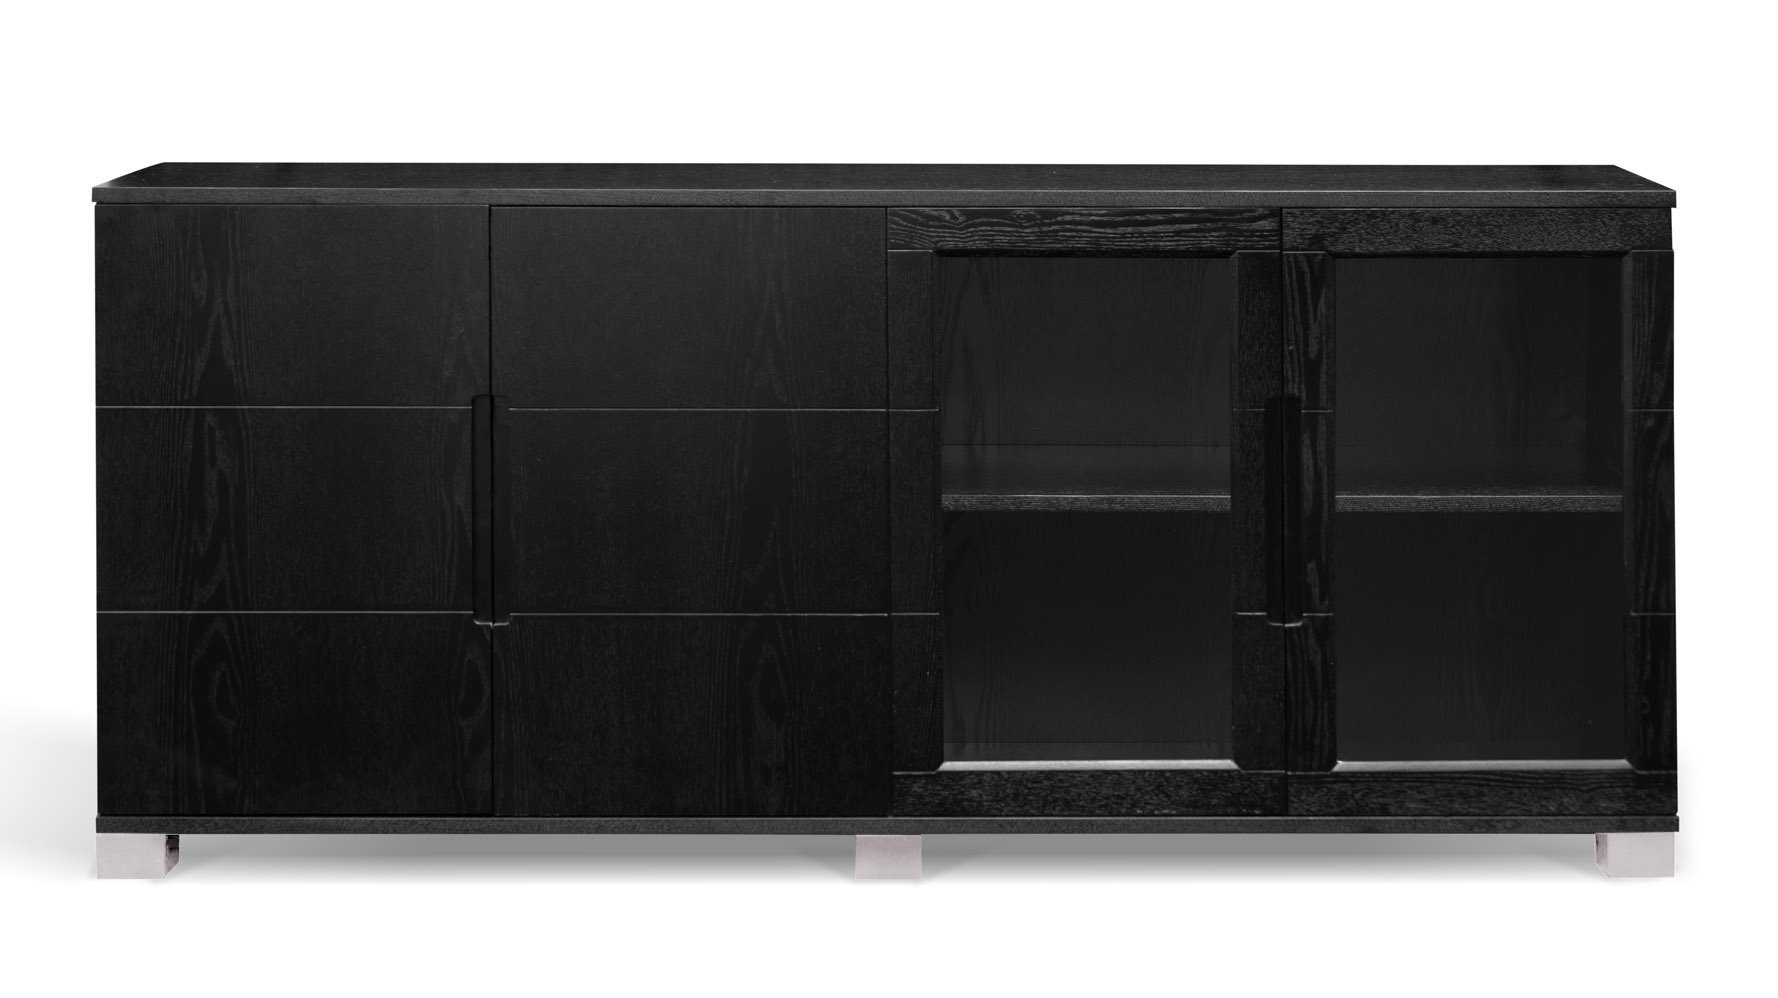 Hayes Modern Cabinet - Black Oak with Glass Doors | Zuri Furniture